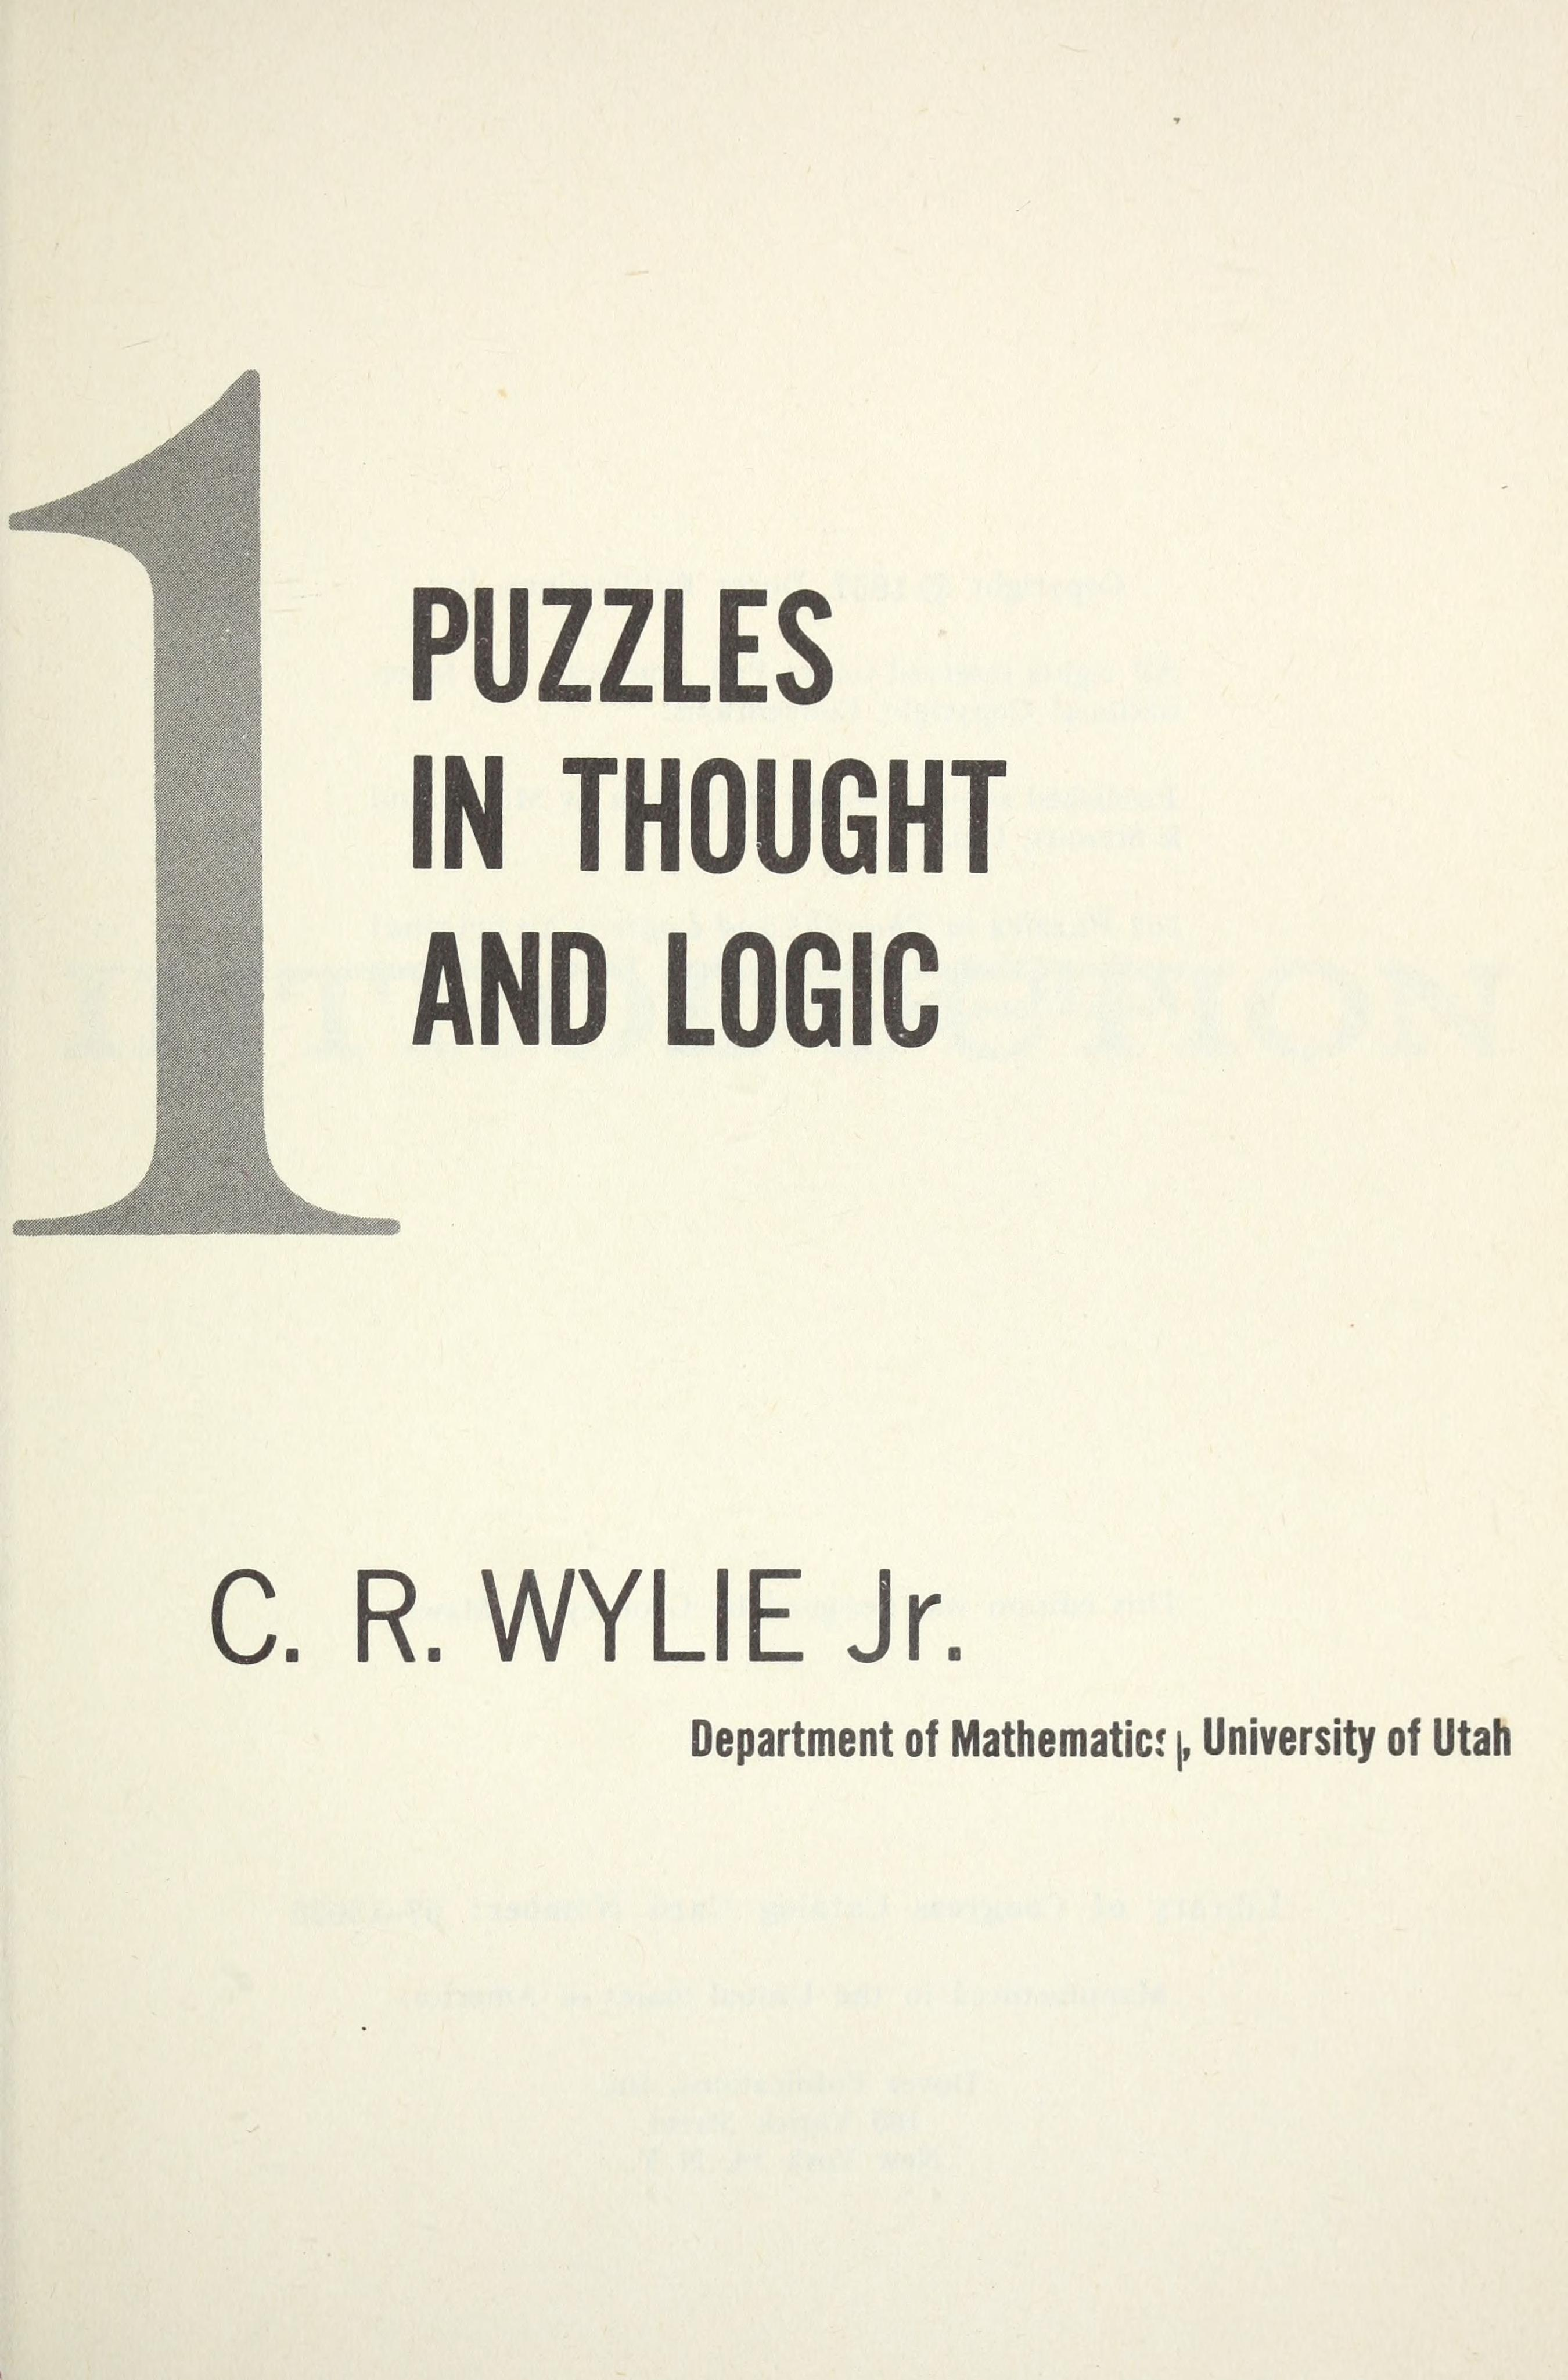 eBook 101 puzzles in thought and logic download | online | audio